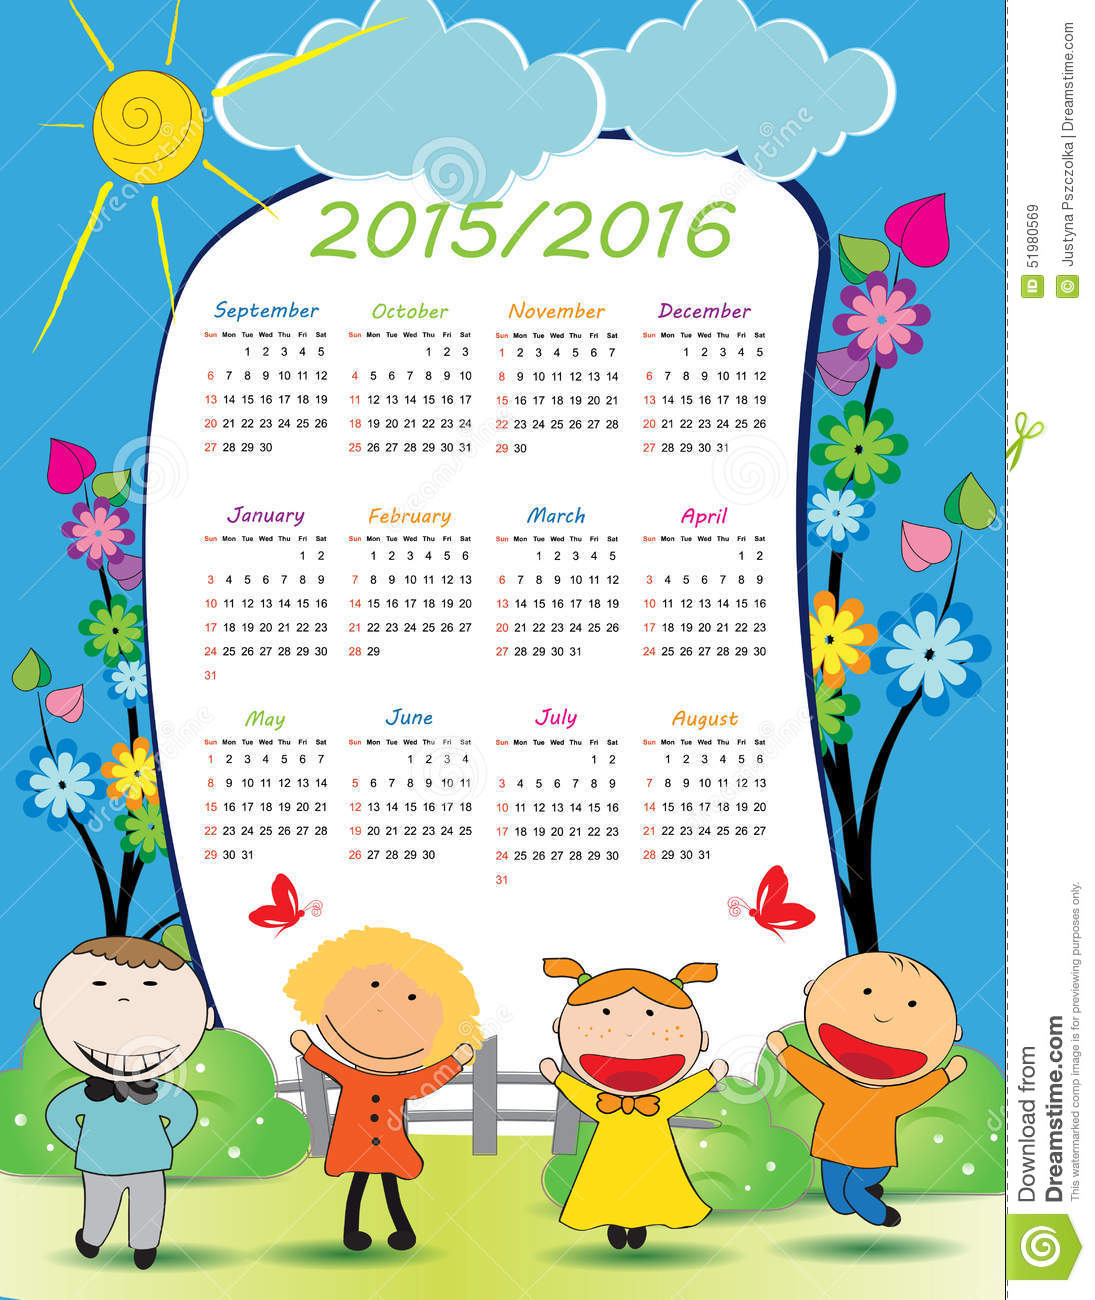 school calendar on new year school from 2015 to 2016 year